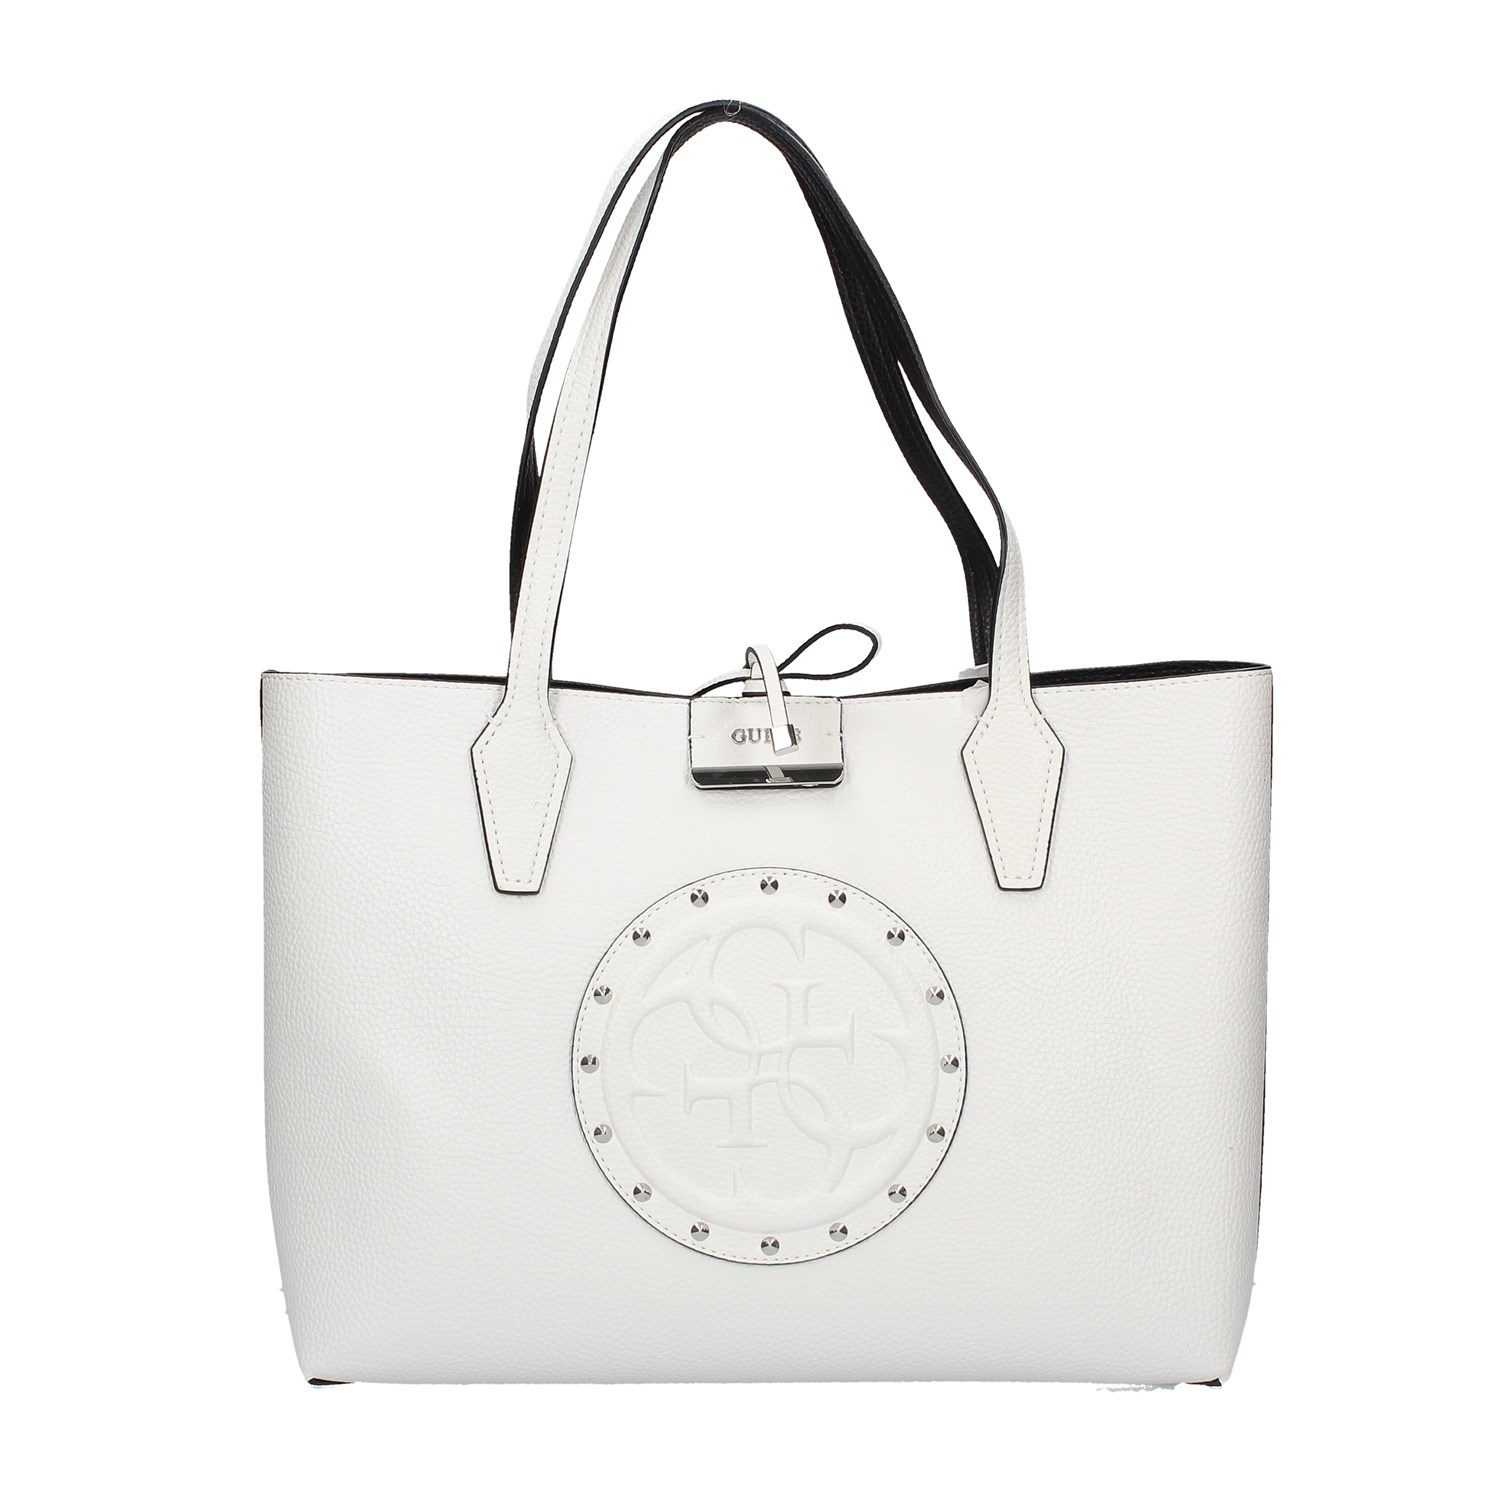 0be233d0f61 Guess Shopping Bag White | Shopping Bag Women | Stage Accessories